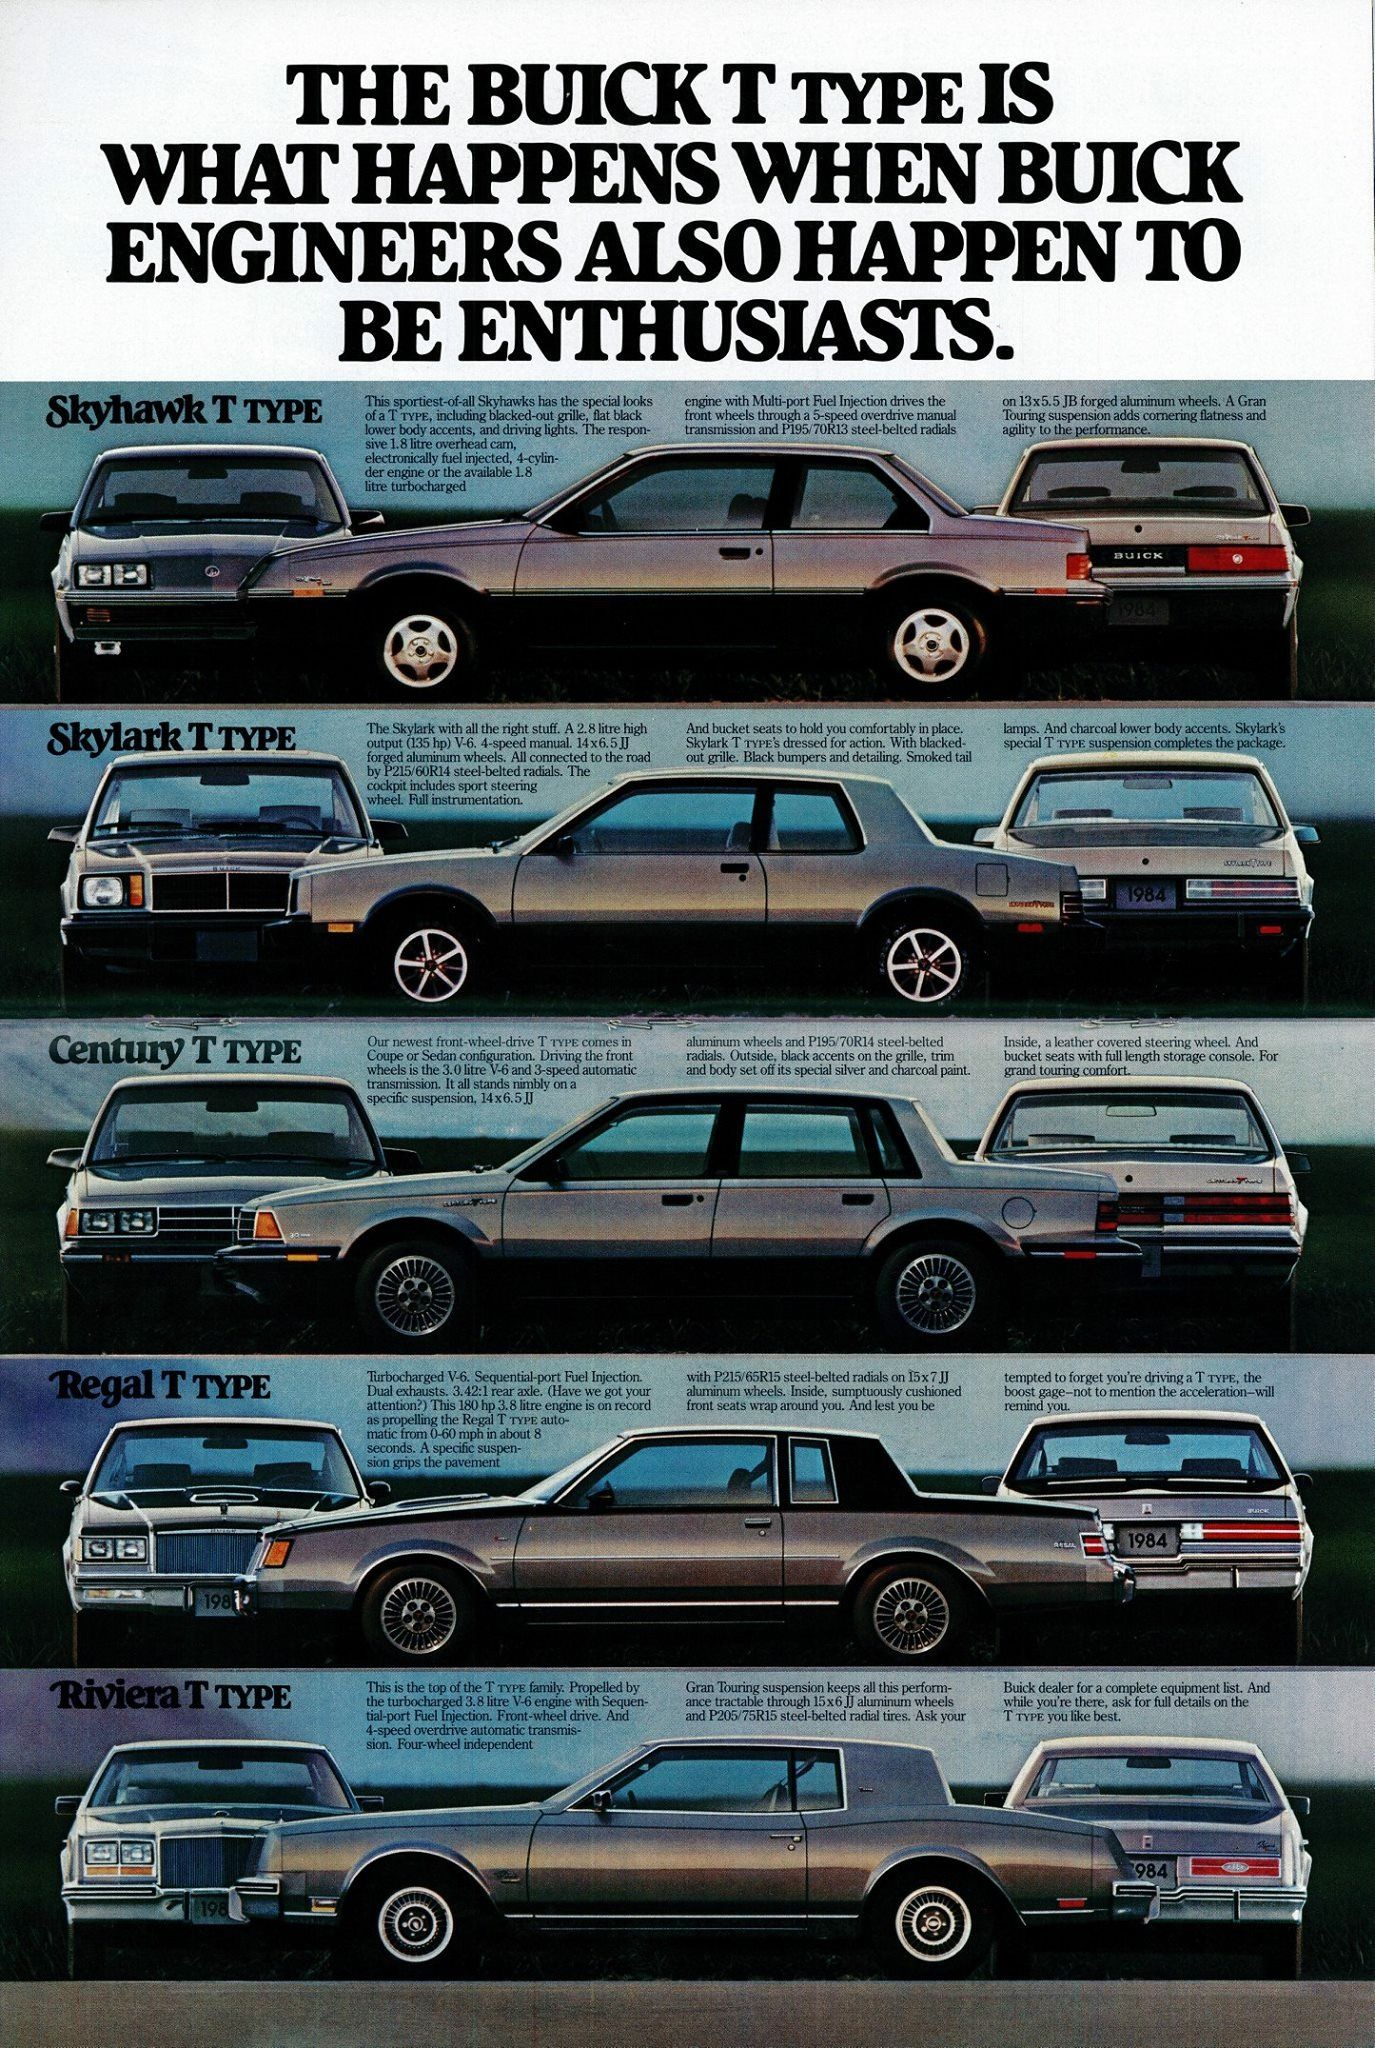 32 The Hot Air Turbo Buick Website Ideas Buick Buick Grand National Buick Regal